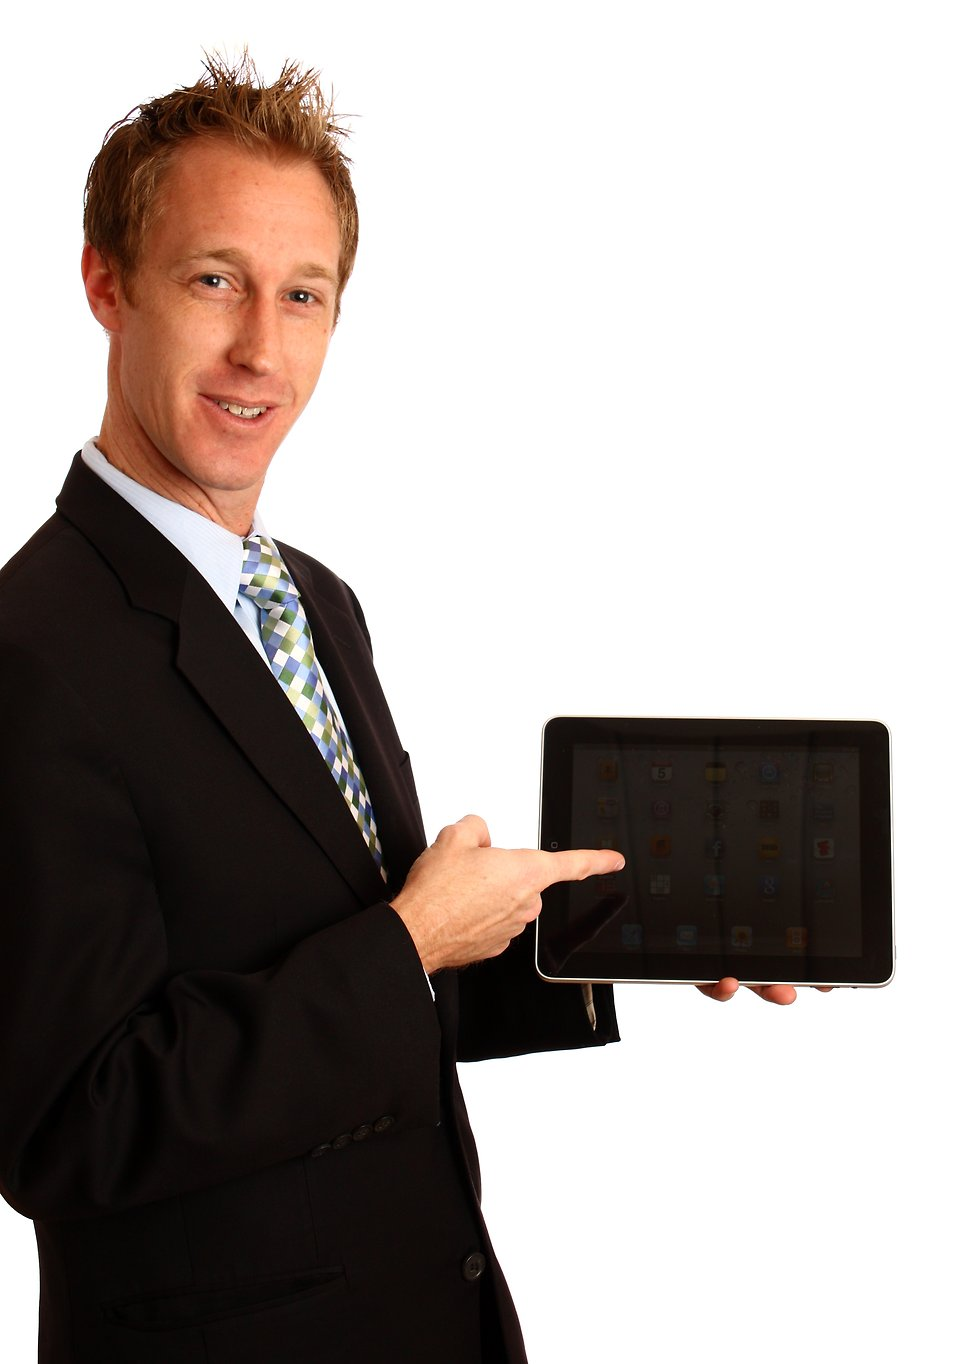 13245-a-young-businessman-holding-a-tabl